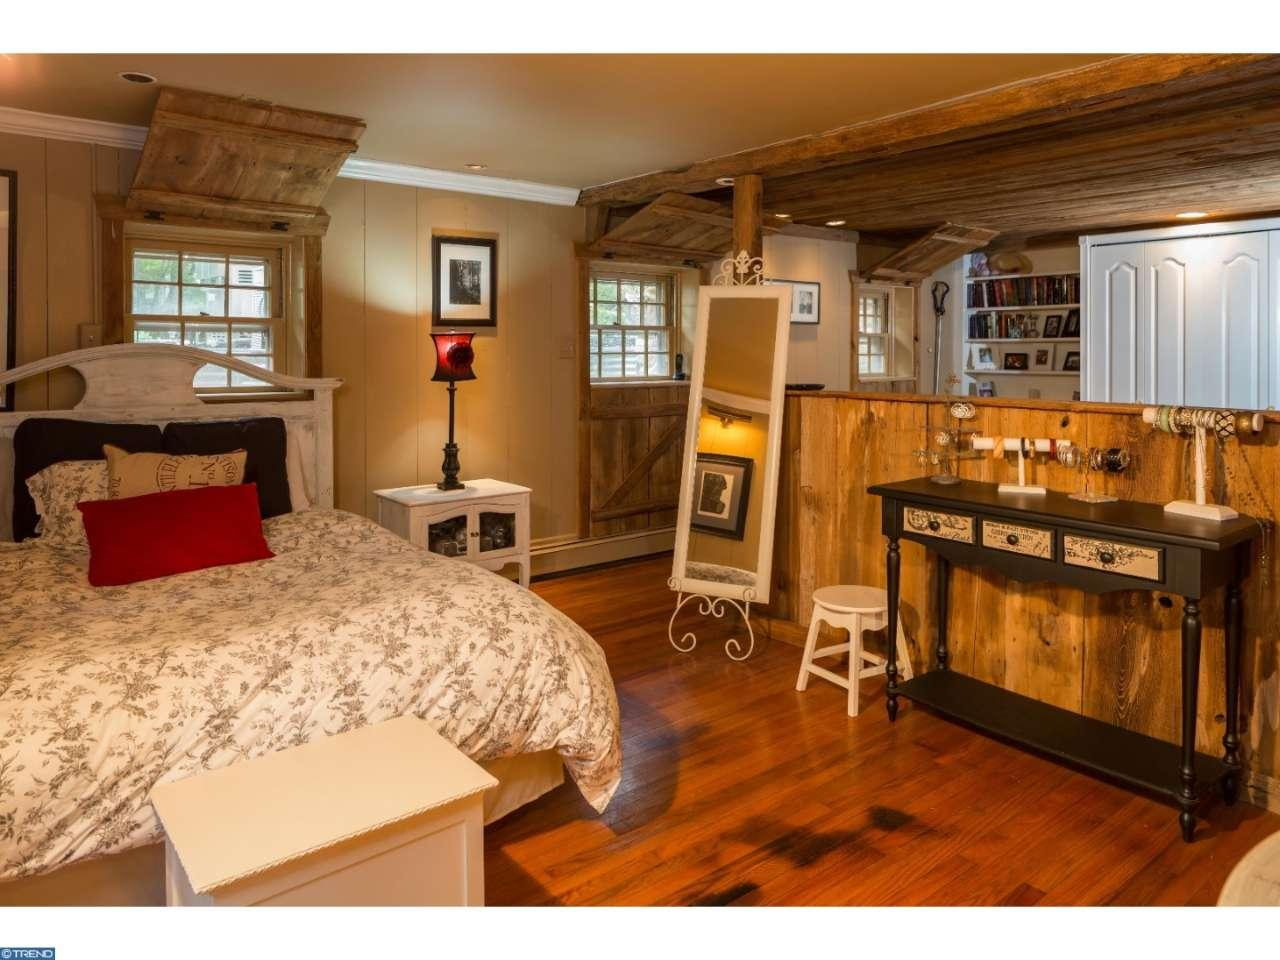 Leap Year Barn 115 Arrons Ave Doylestown PA for sale - bedroom